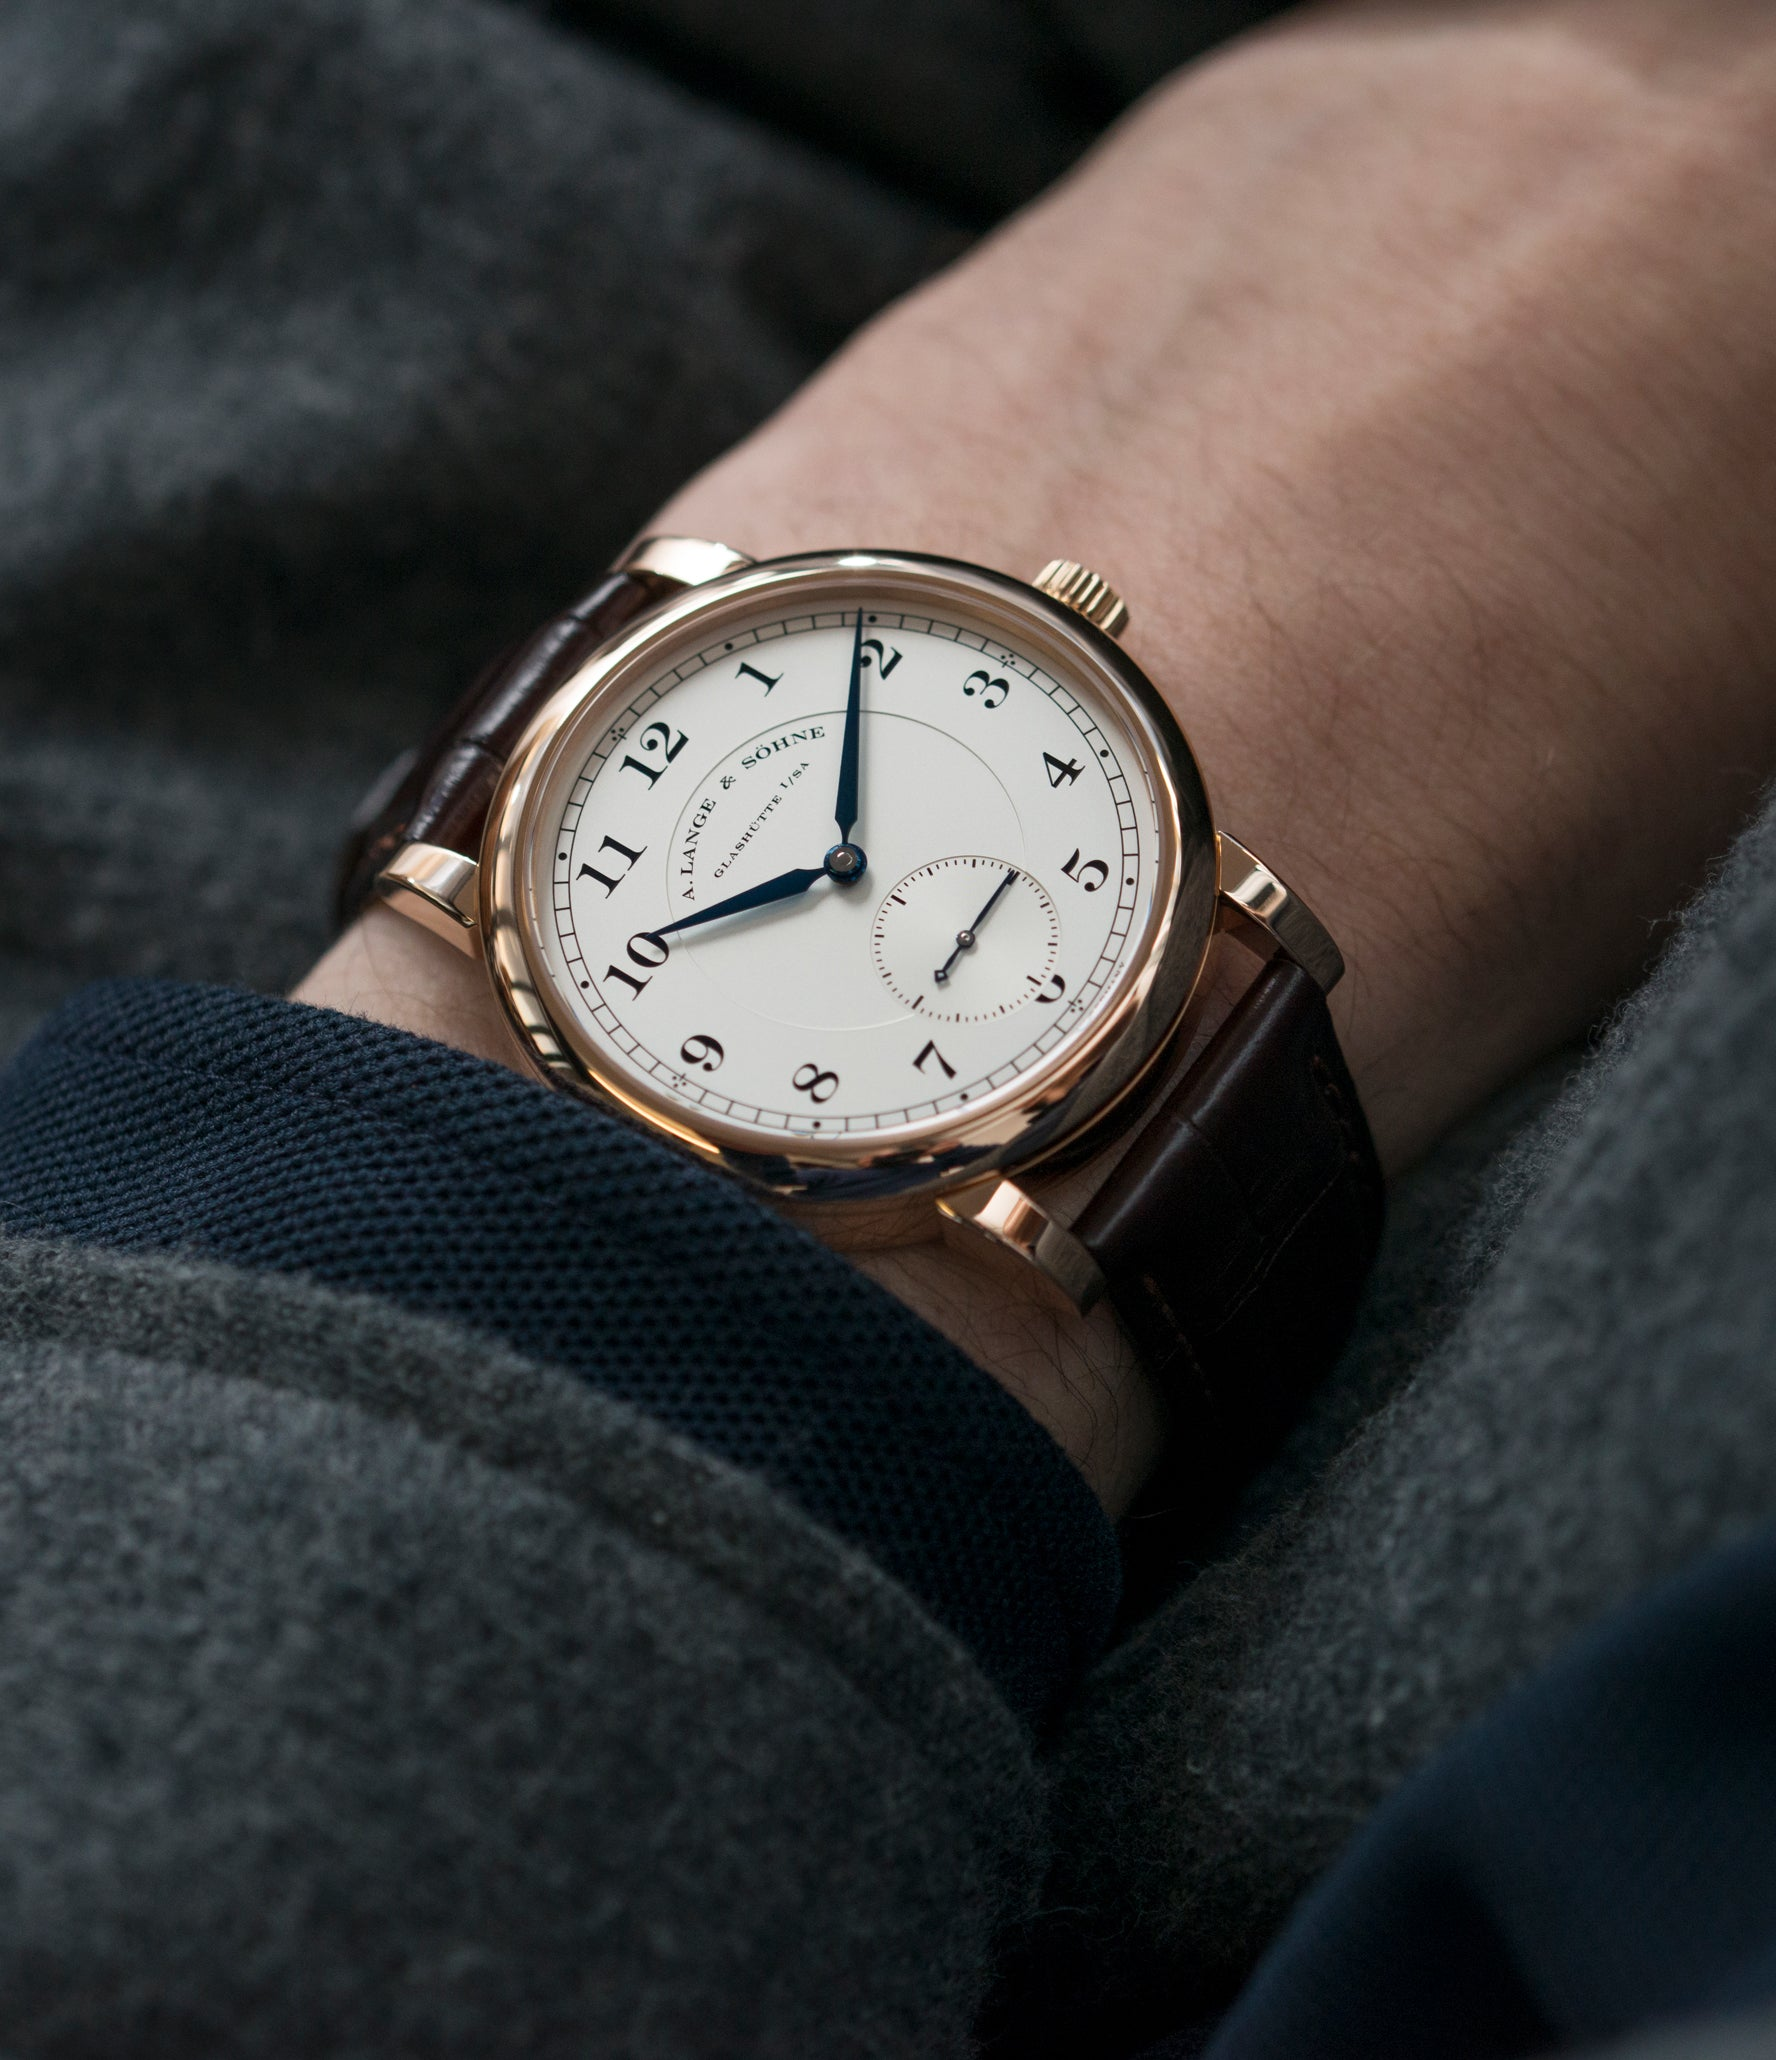 wristwatch A. Lange & Sohne 1815 233.032 rose gold dress watch for sale online at A Collected Man London Uk specialist of preowned luxury watches